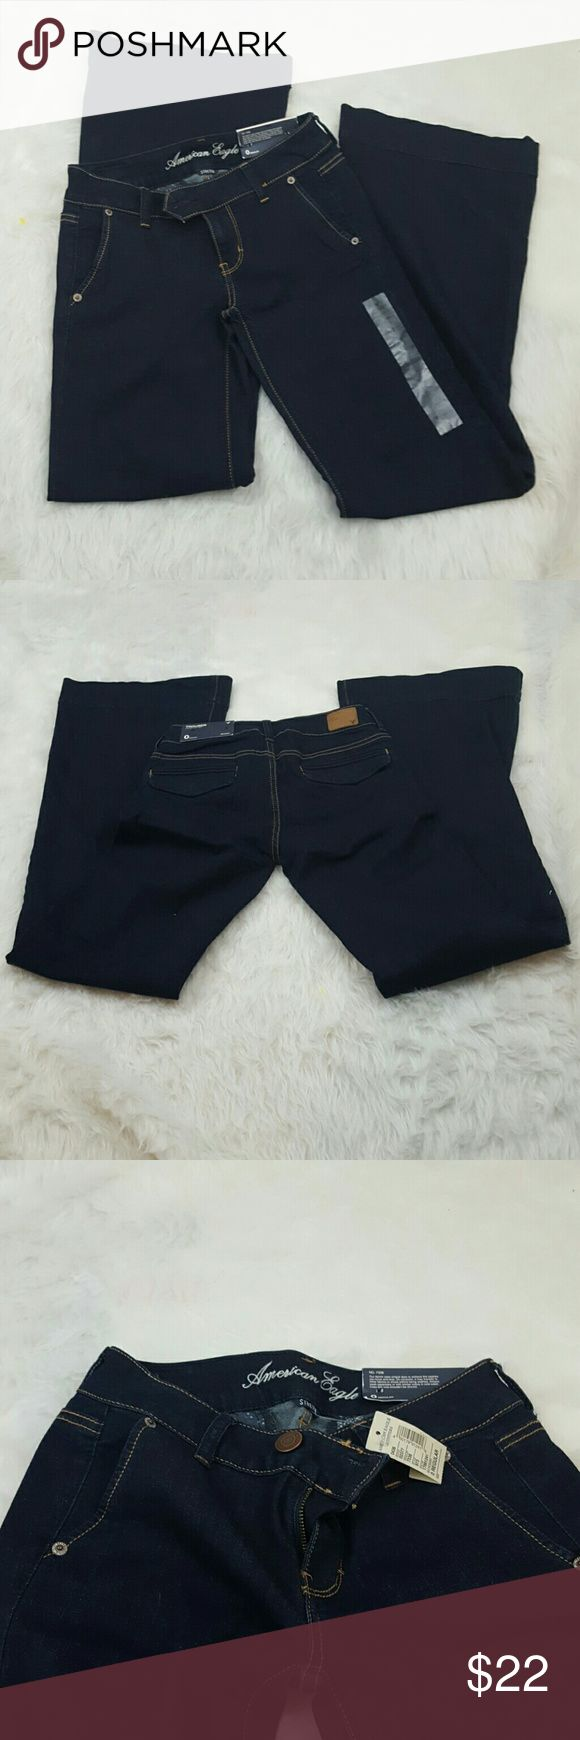 NWT American Eagle Dark Wash Trousers size 0 Size 0 American Eagle stretch  trousers new with tags.  26x31. American Eagle Outfitters Jeans Flare & Wide Leg